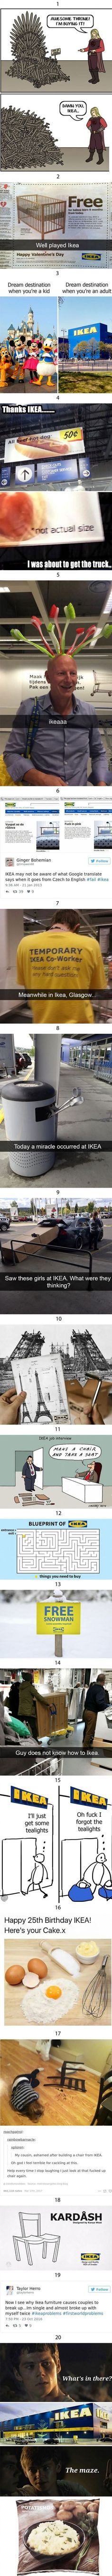 Ikea's The Best